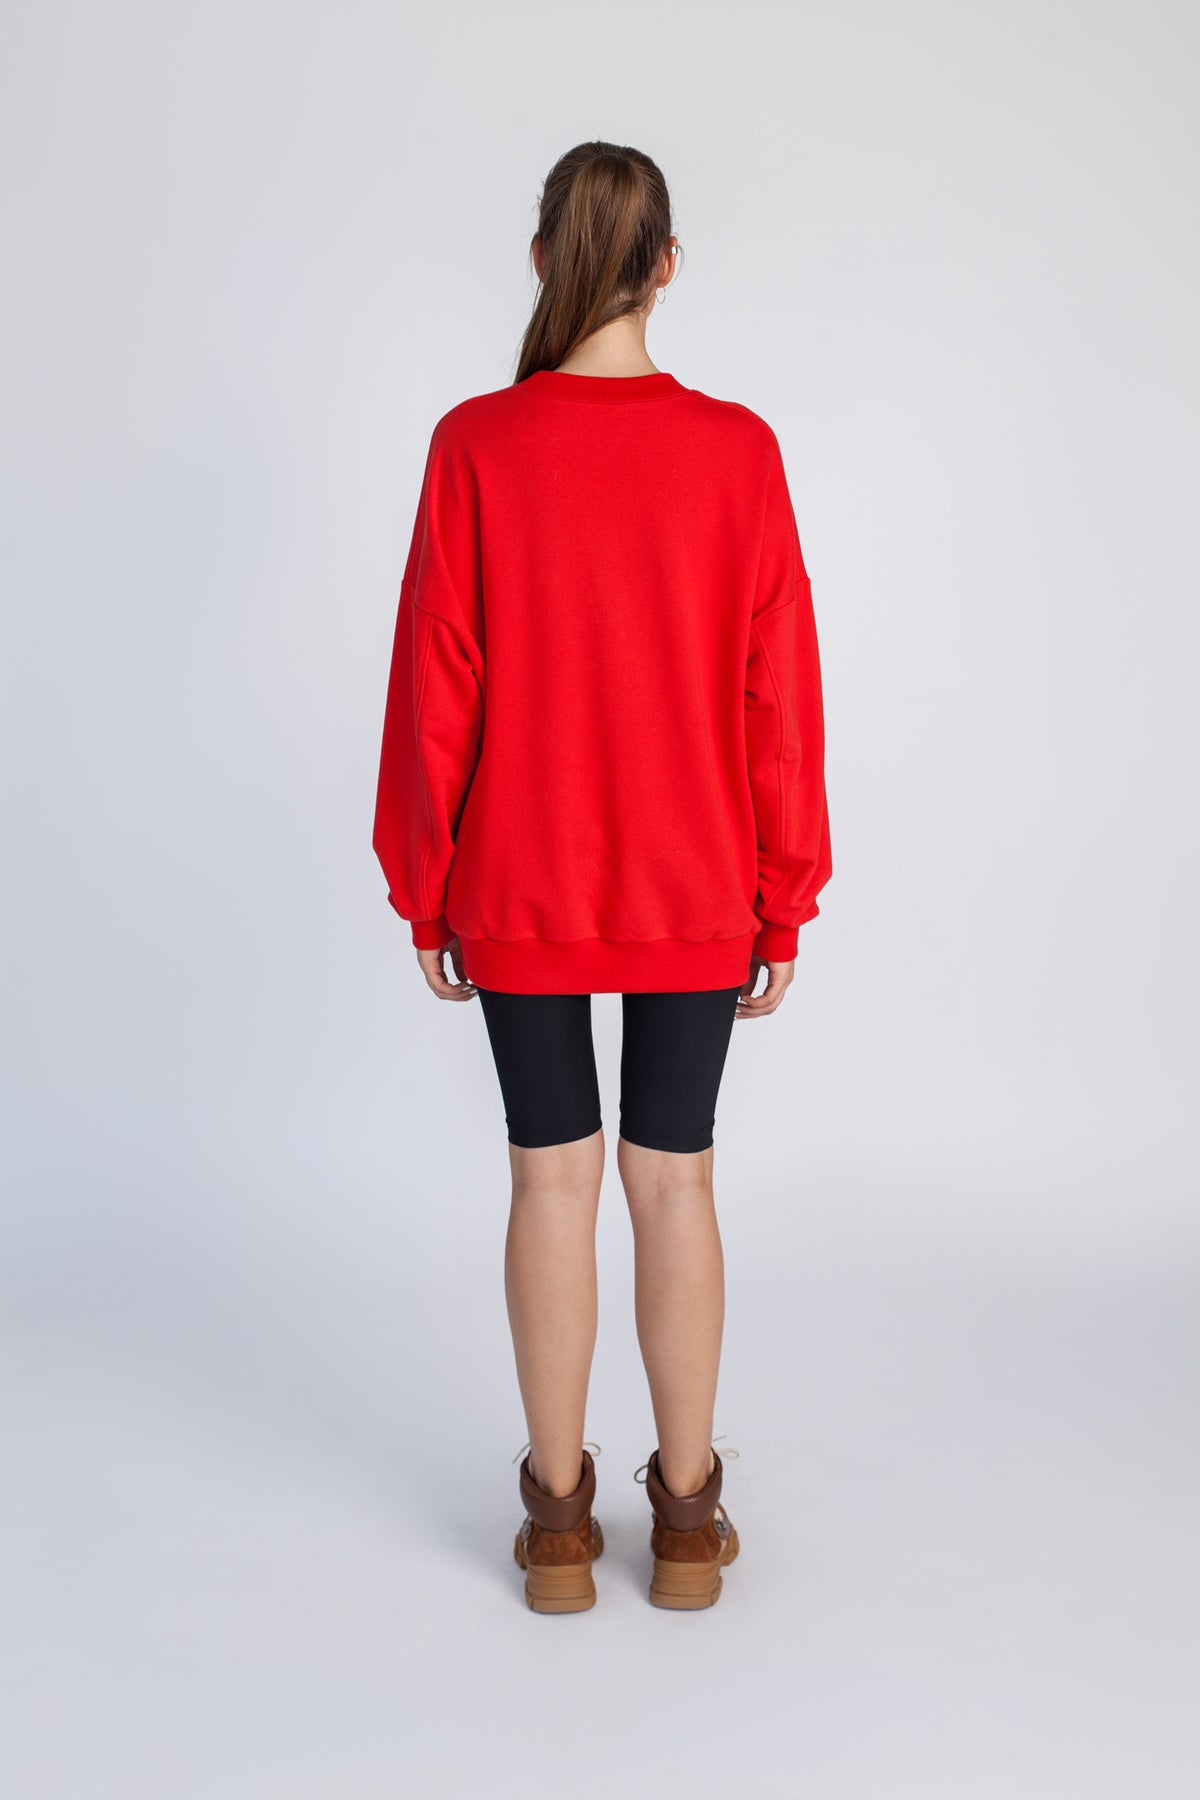 RUSSKI | Scarlet red oversize sweater